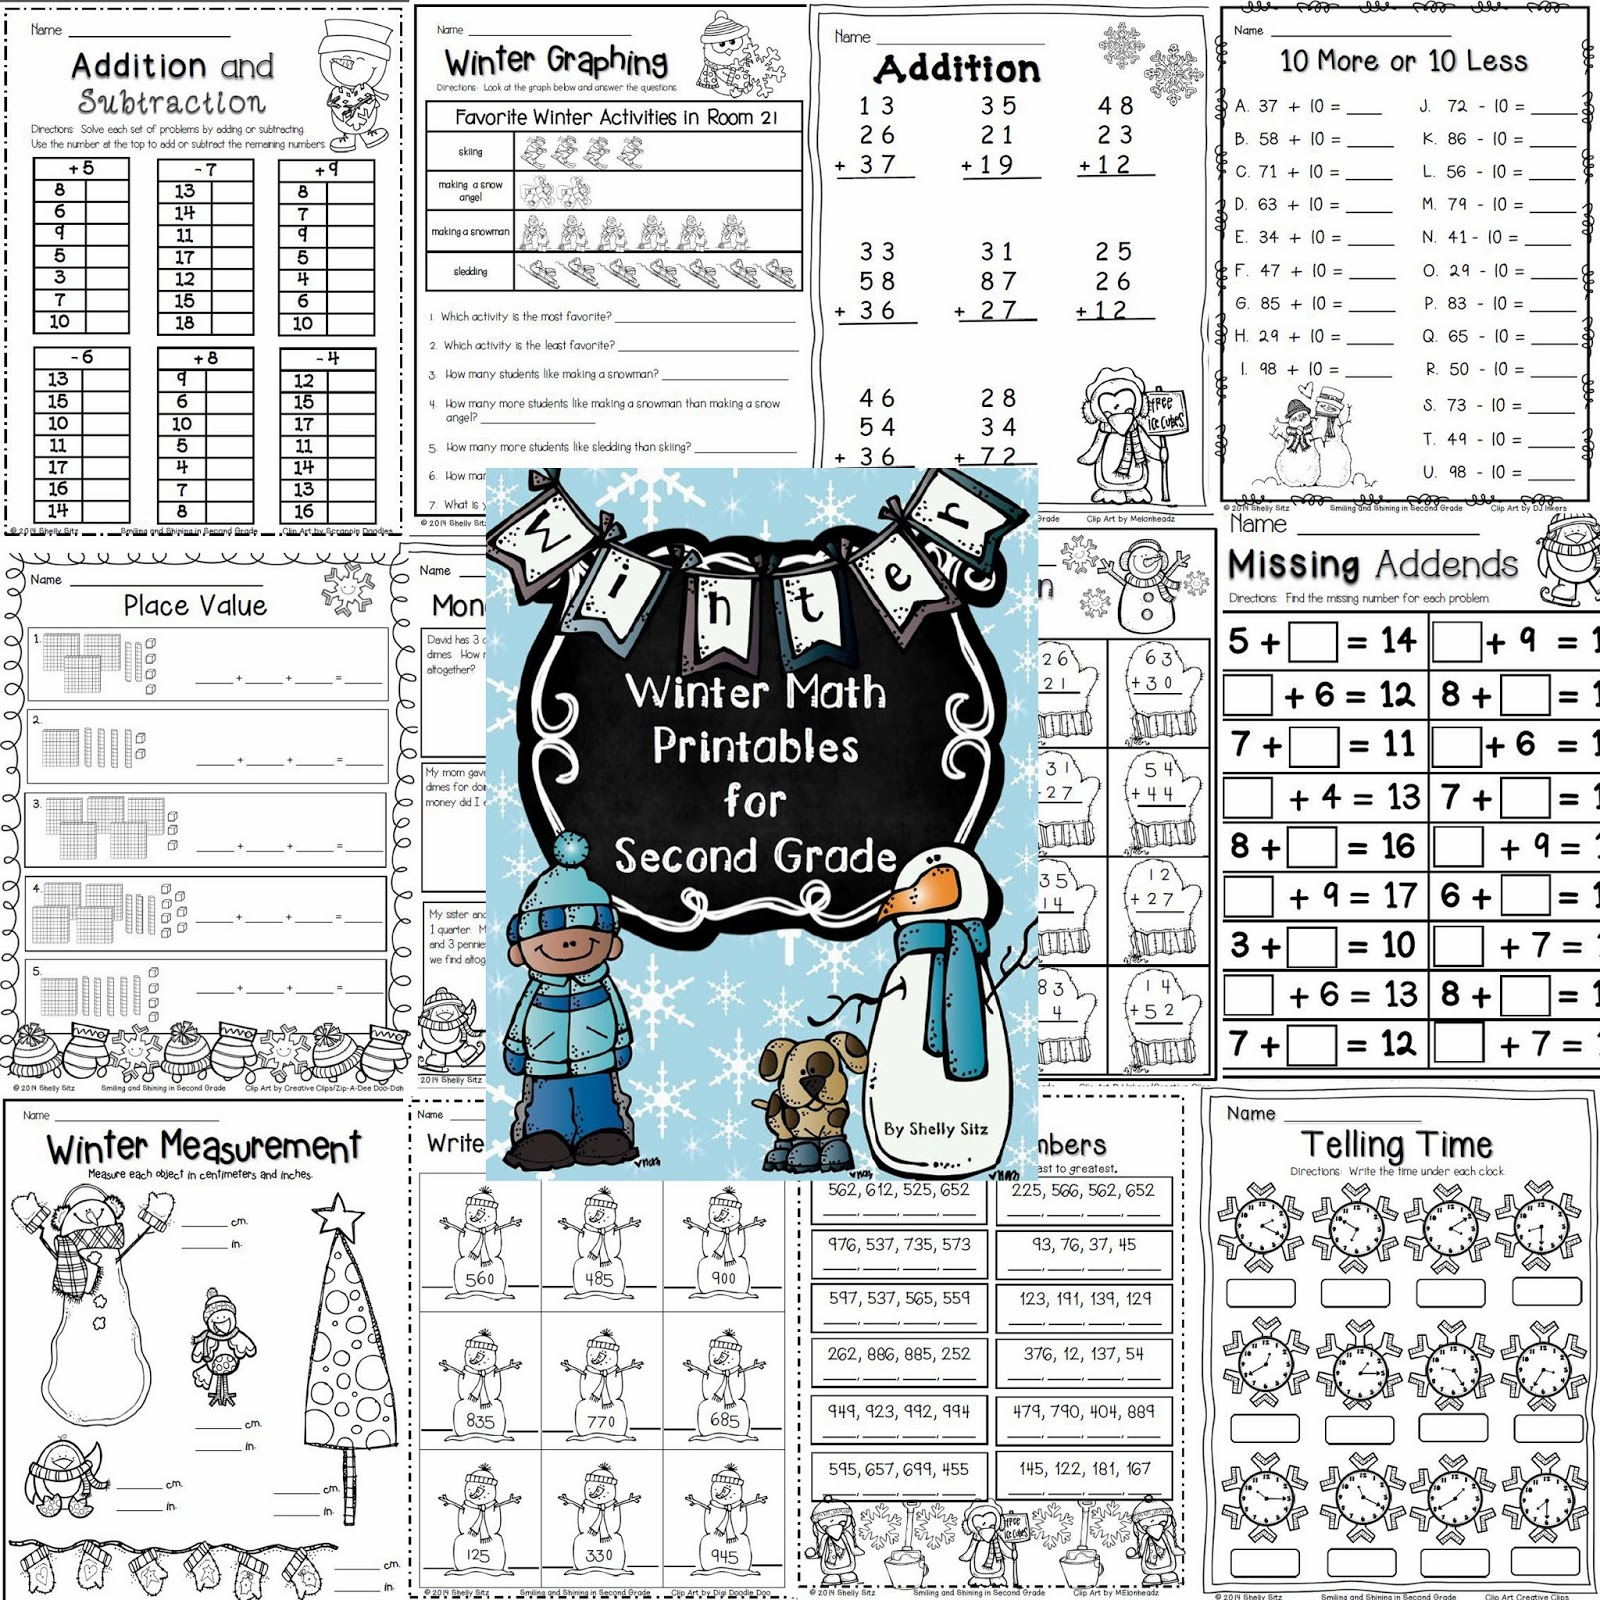 Smiling And Shining In Second Grade Winter Math Printables